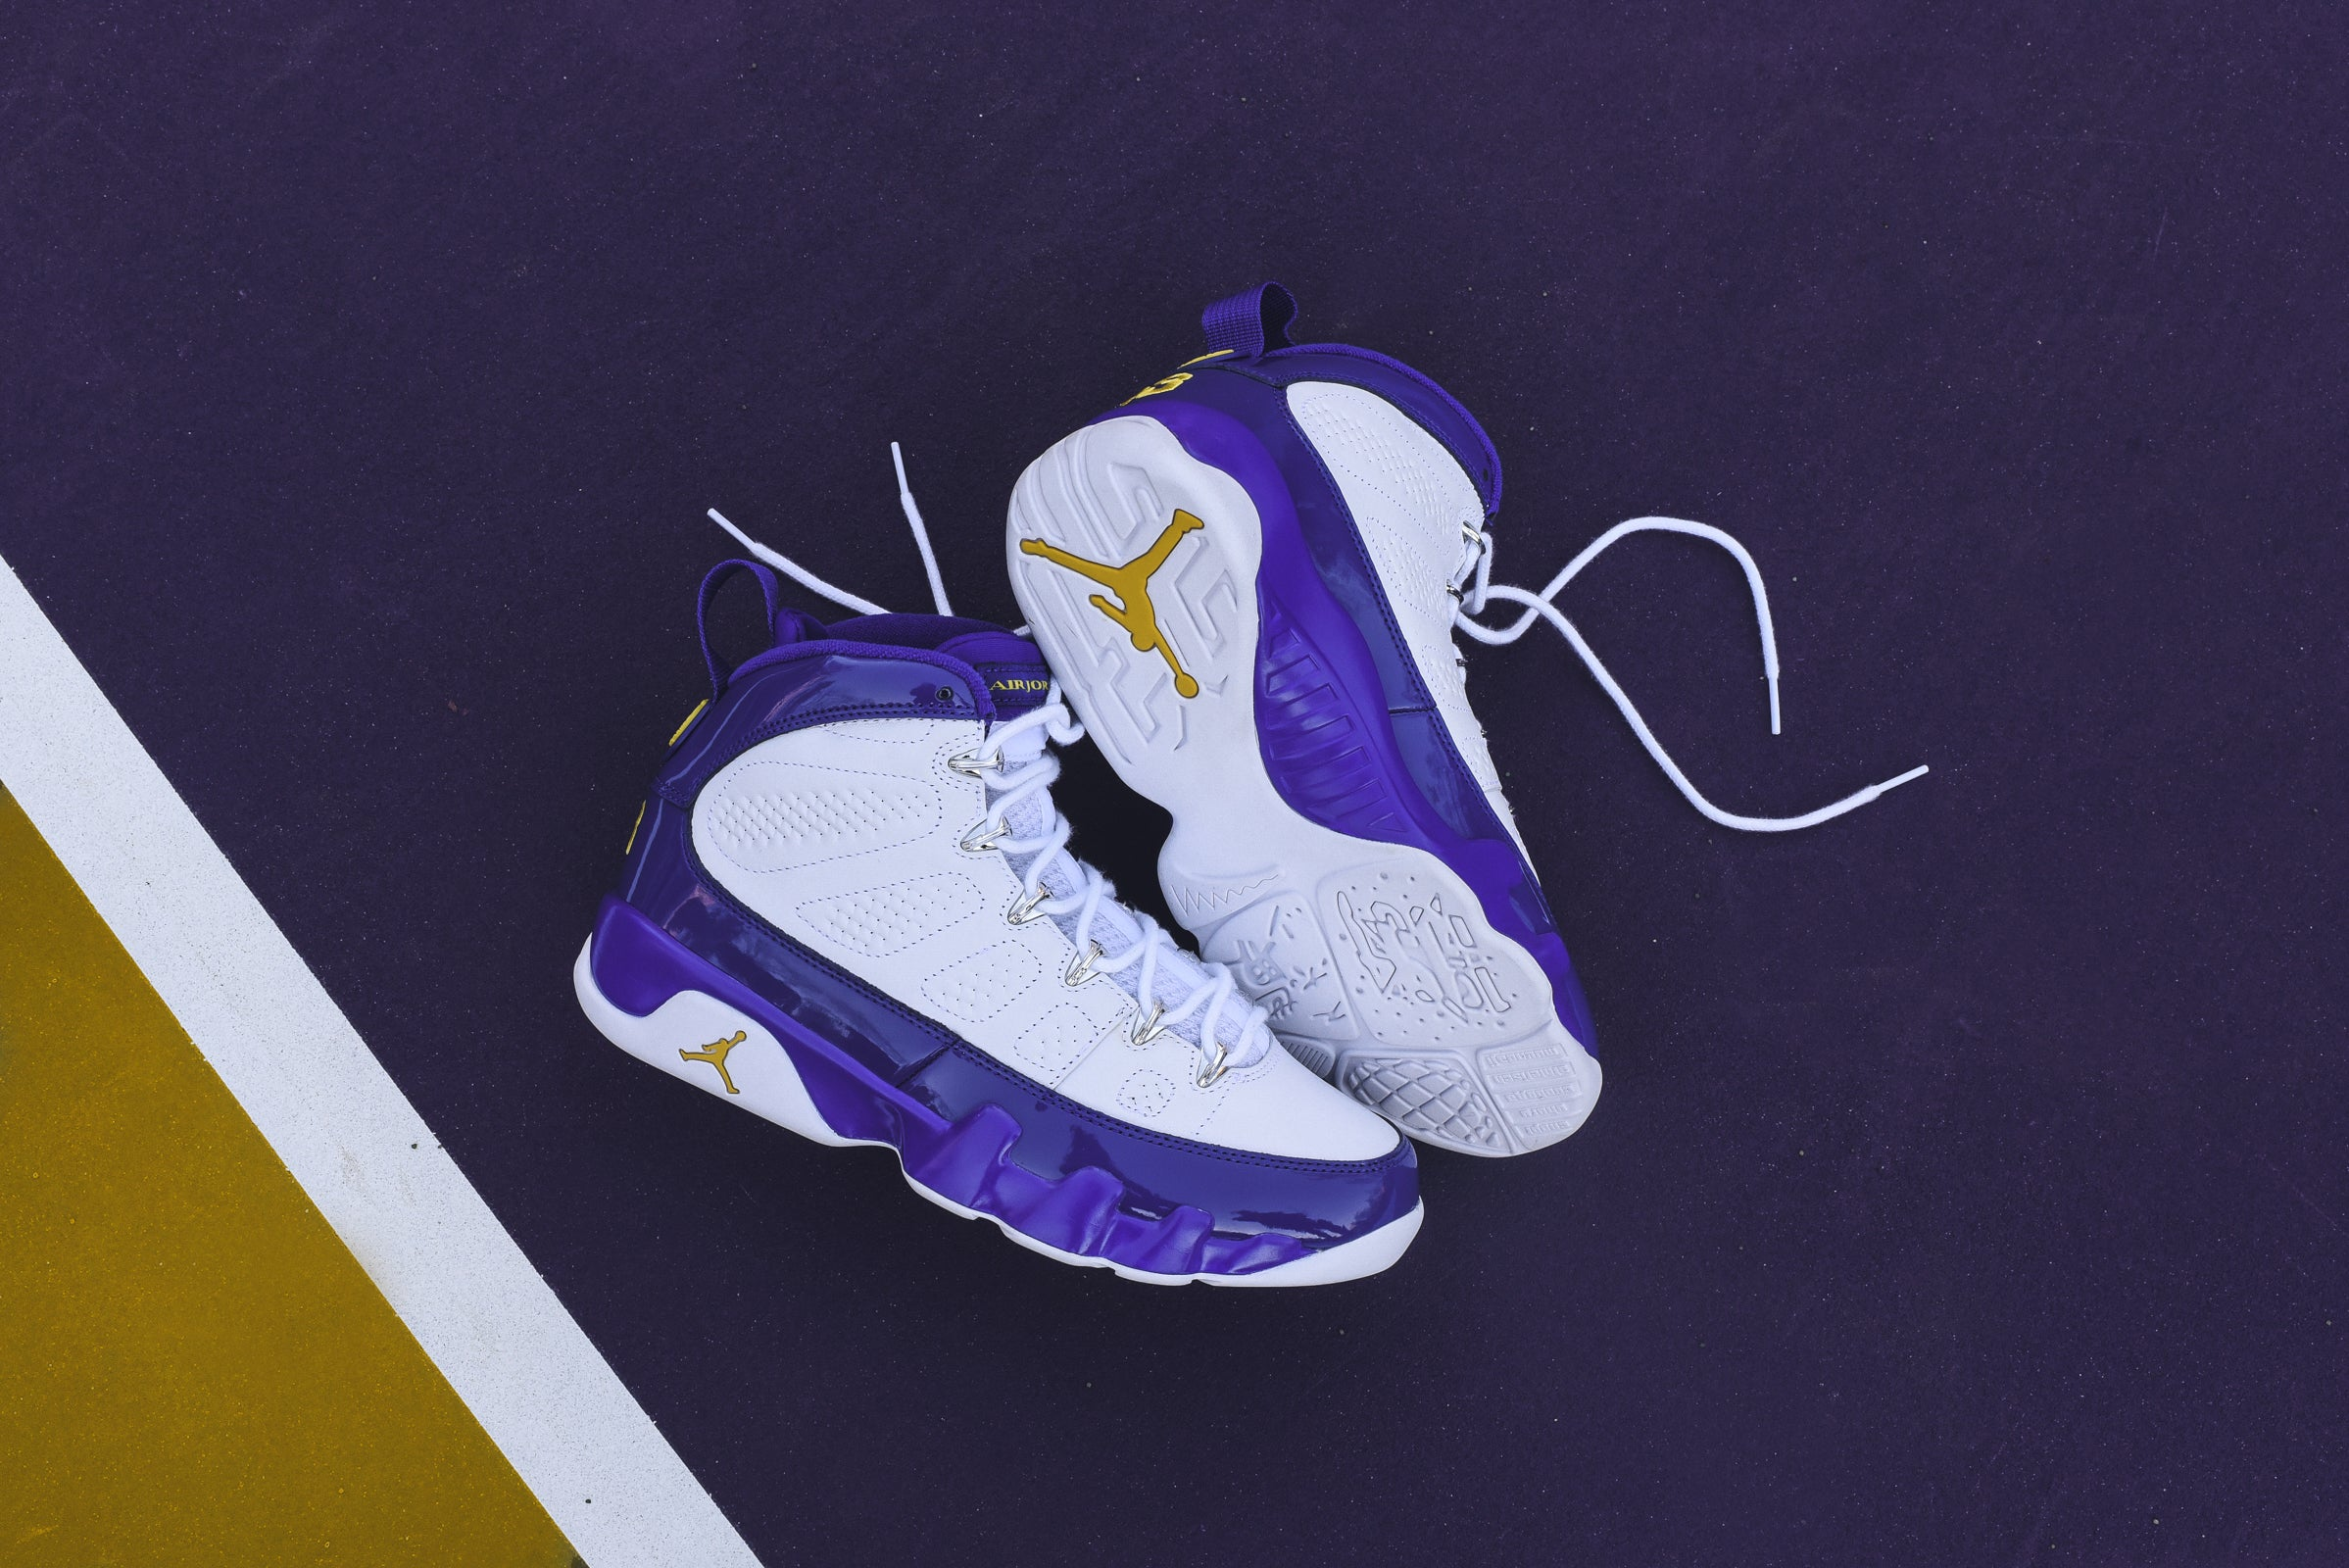 brand new 76536 904c4 ... Nike Air Jordan 9 Kobe Bryant PE - White Tour Yellow Concord ...